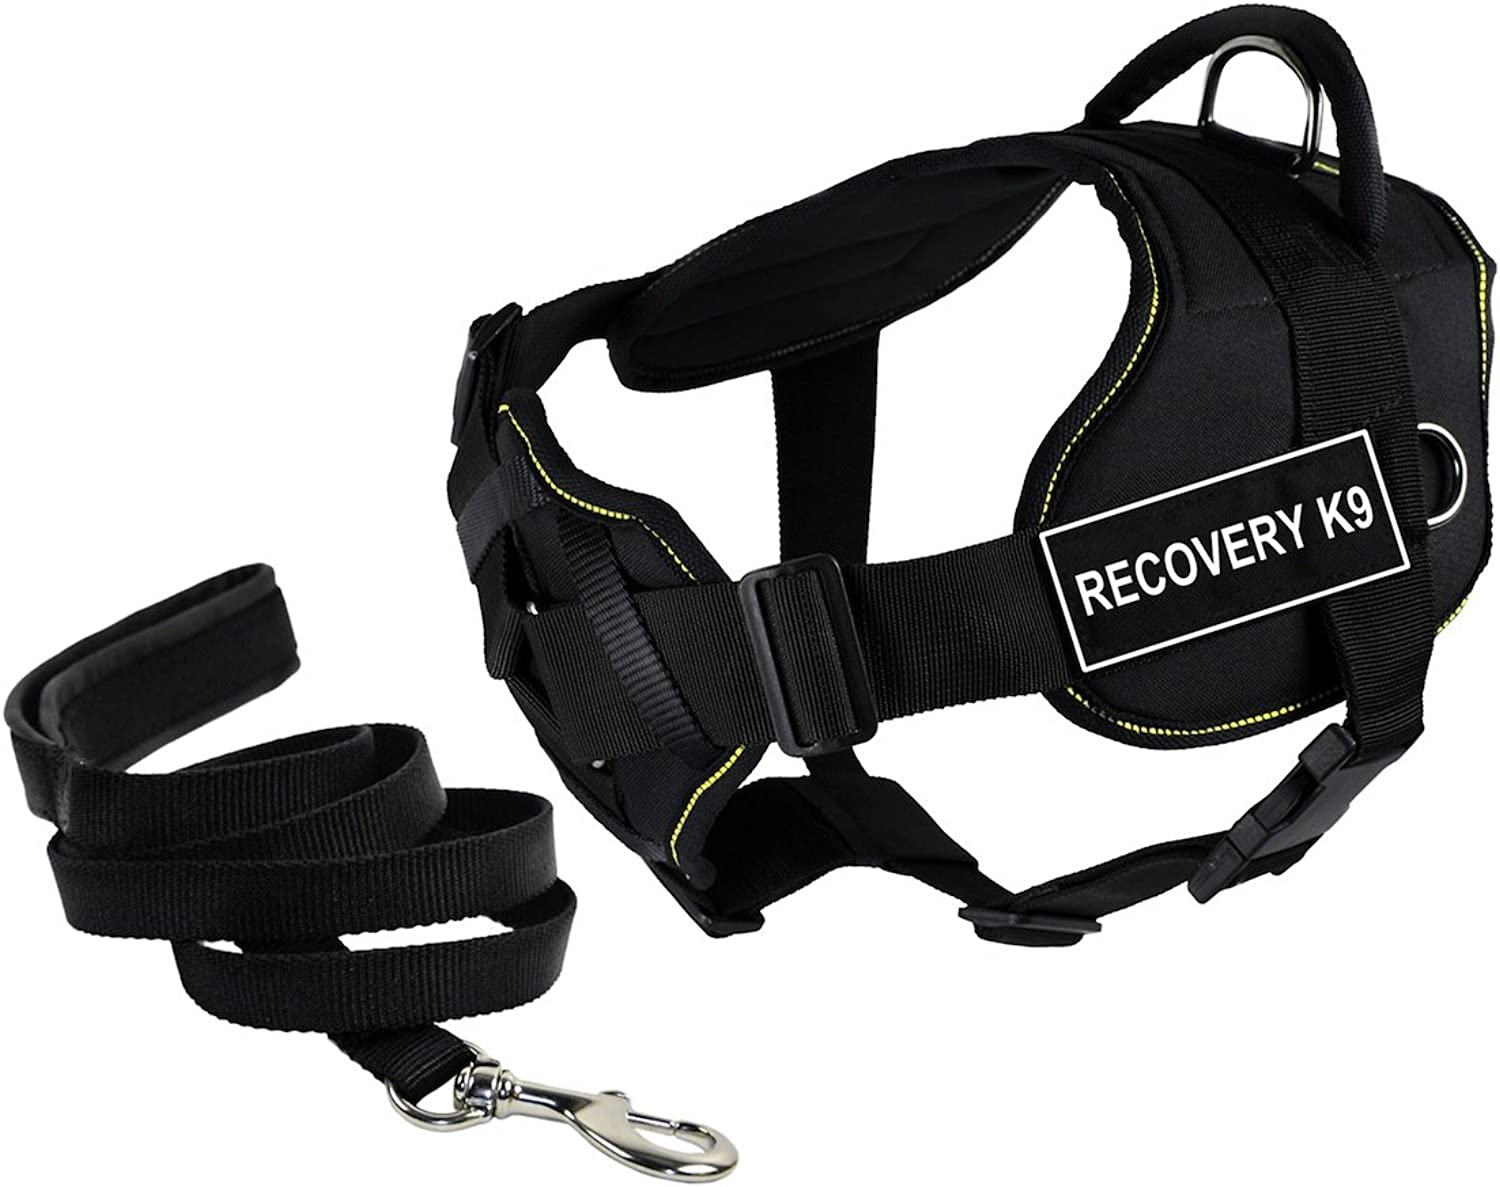 Dean & Tyler's DT Fun Chest Support RECOVERY K9 Harness, Small, with 6 ft Padded Puppy Leash.